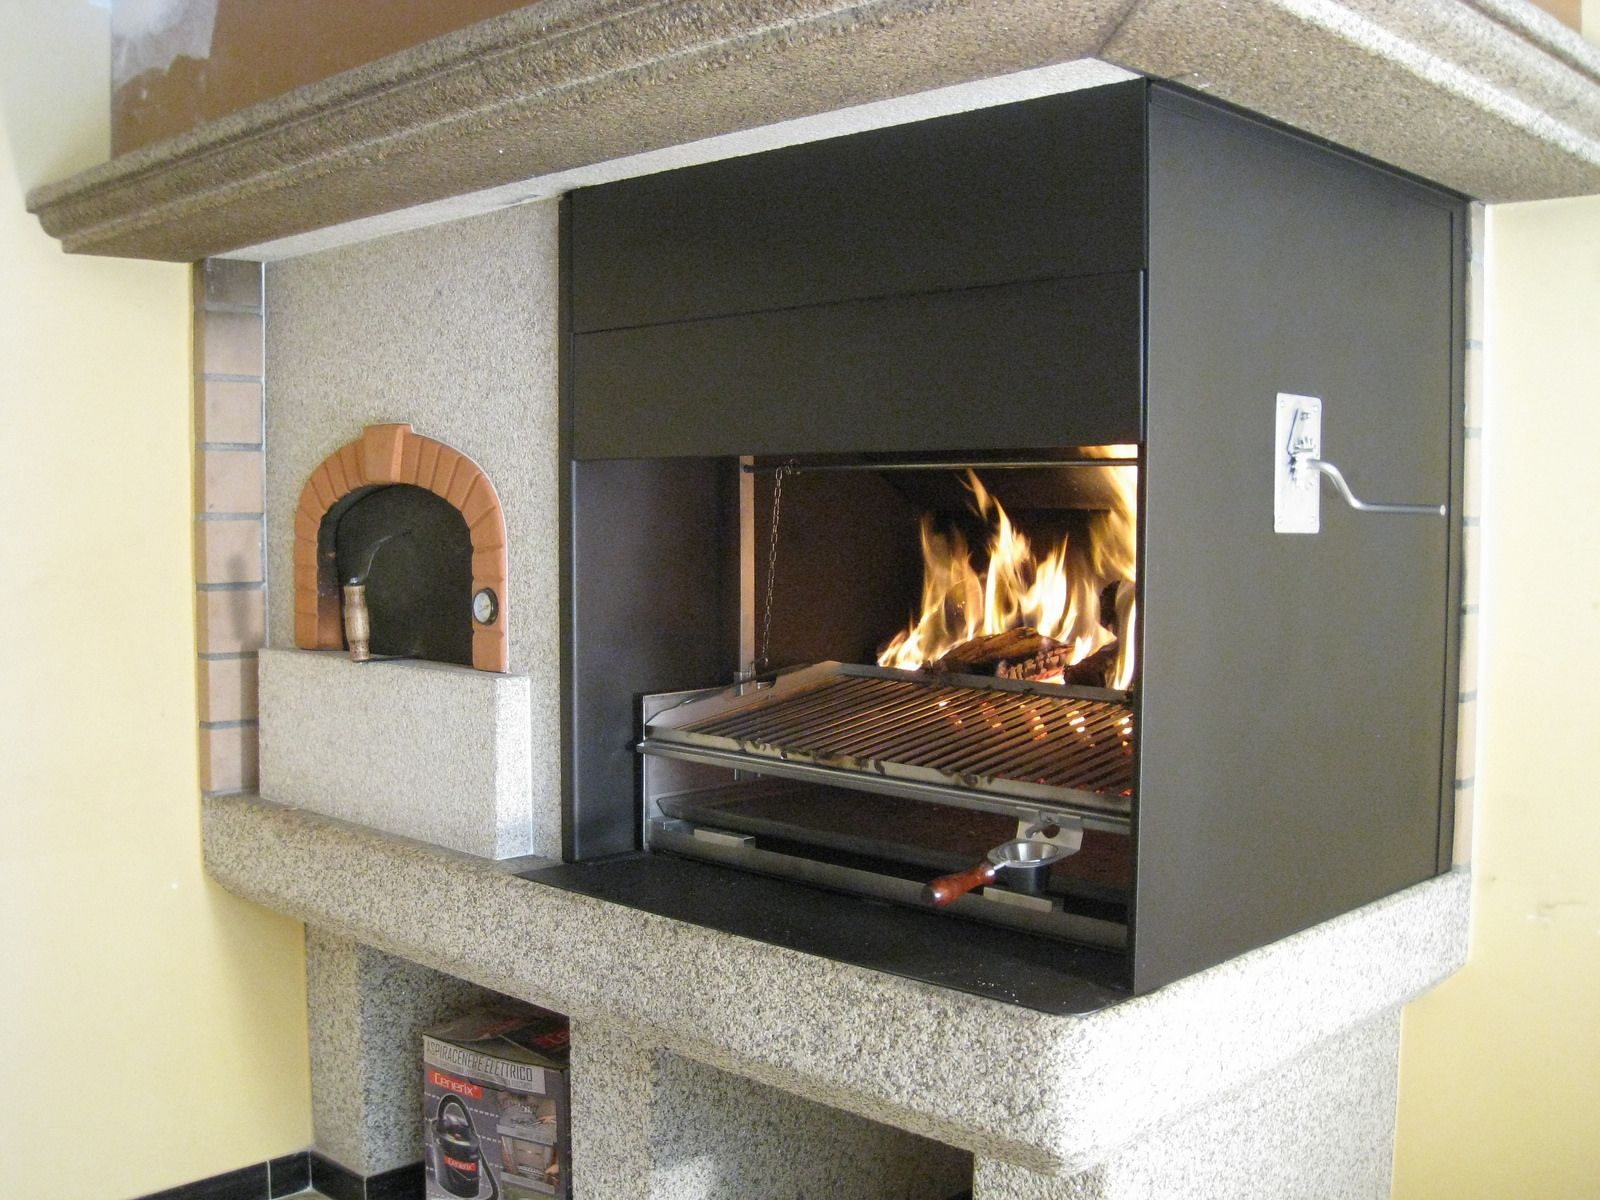 Horno punto alfapizza barbacoa kitchens and fire pit grill - Hornos para barbacoa ...